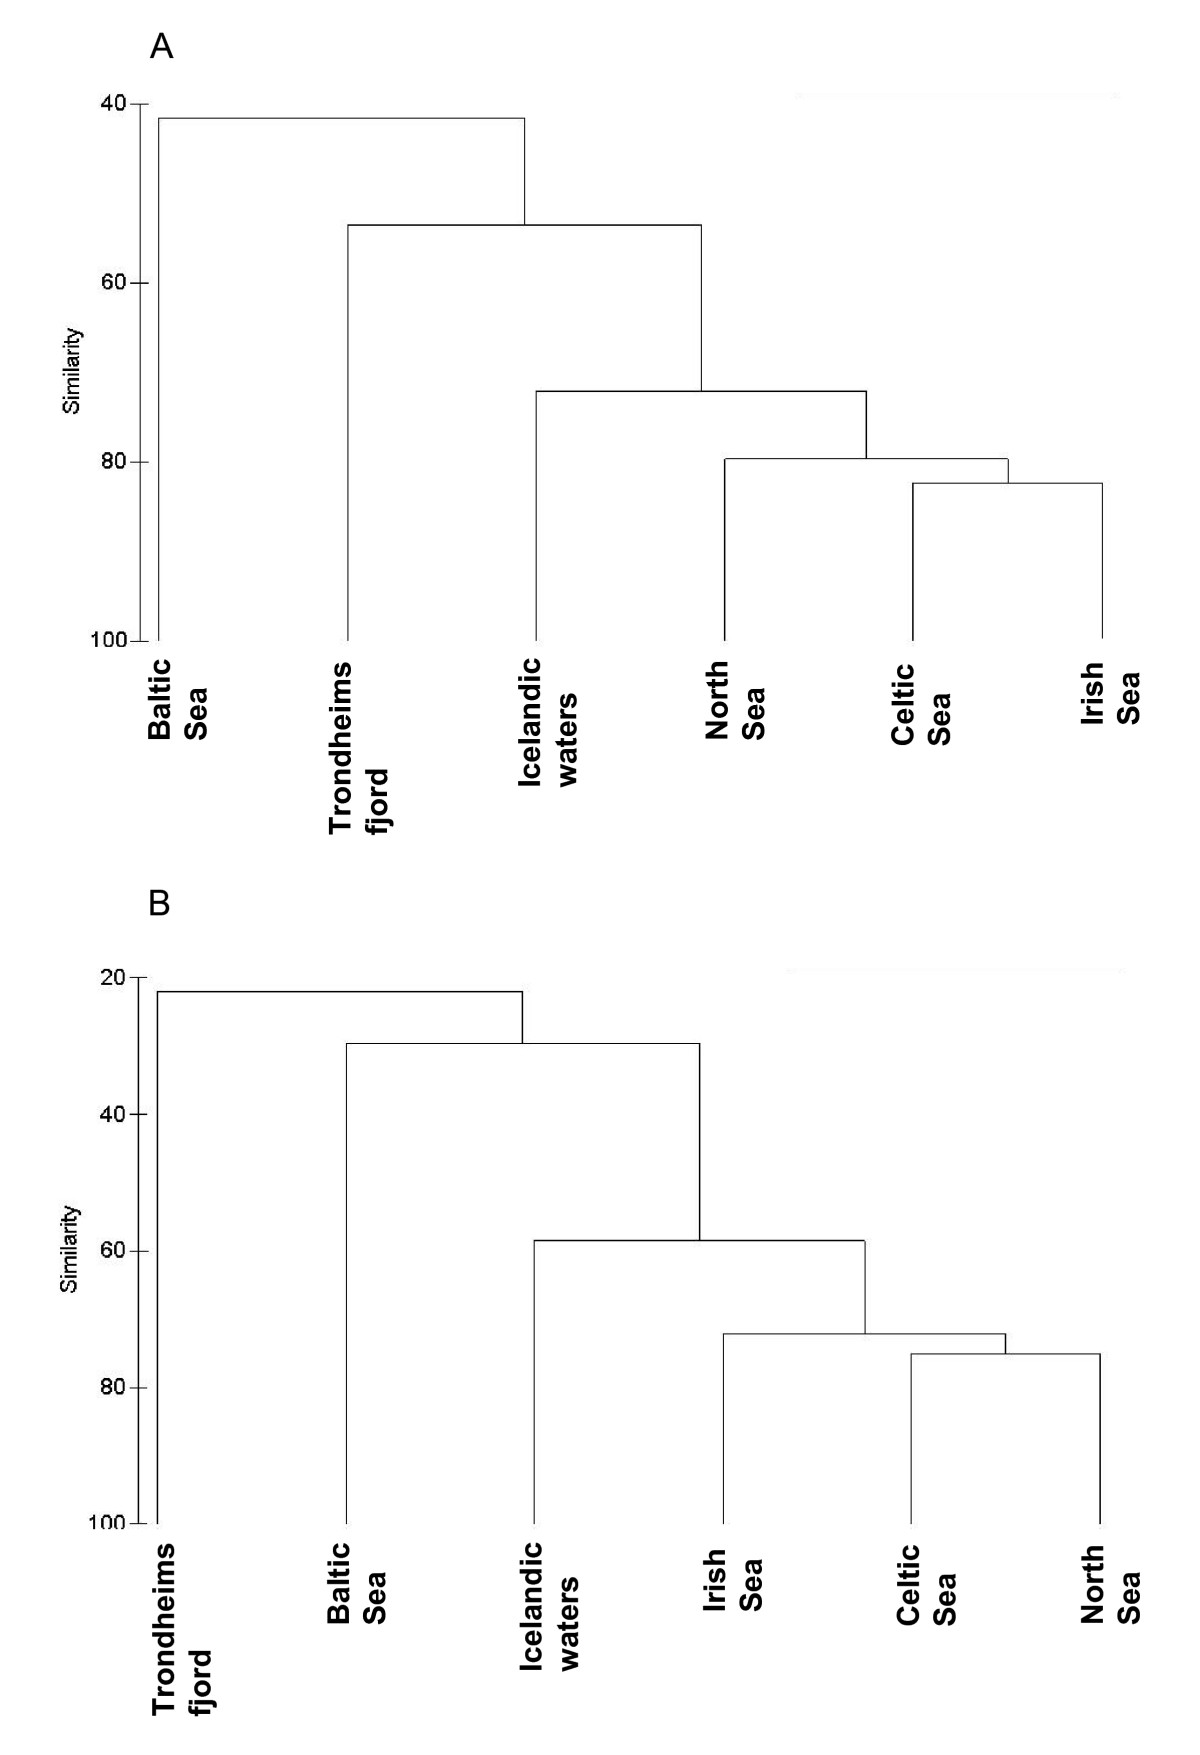 http://static-content.springer.com/image/art%3A10.1186%2F1756-3305-1-23/MediaObjects/13071_2008_Article_23_Fig3_HTML.jpg